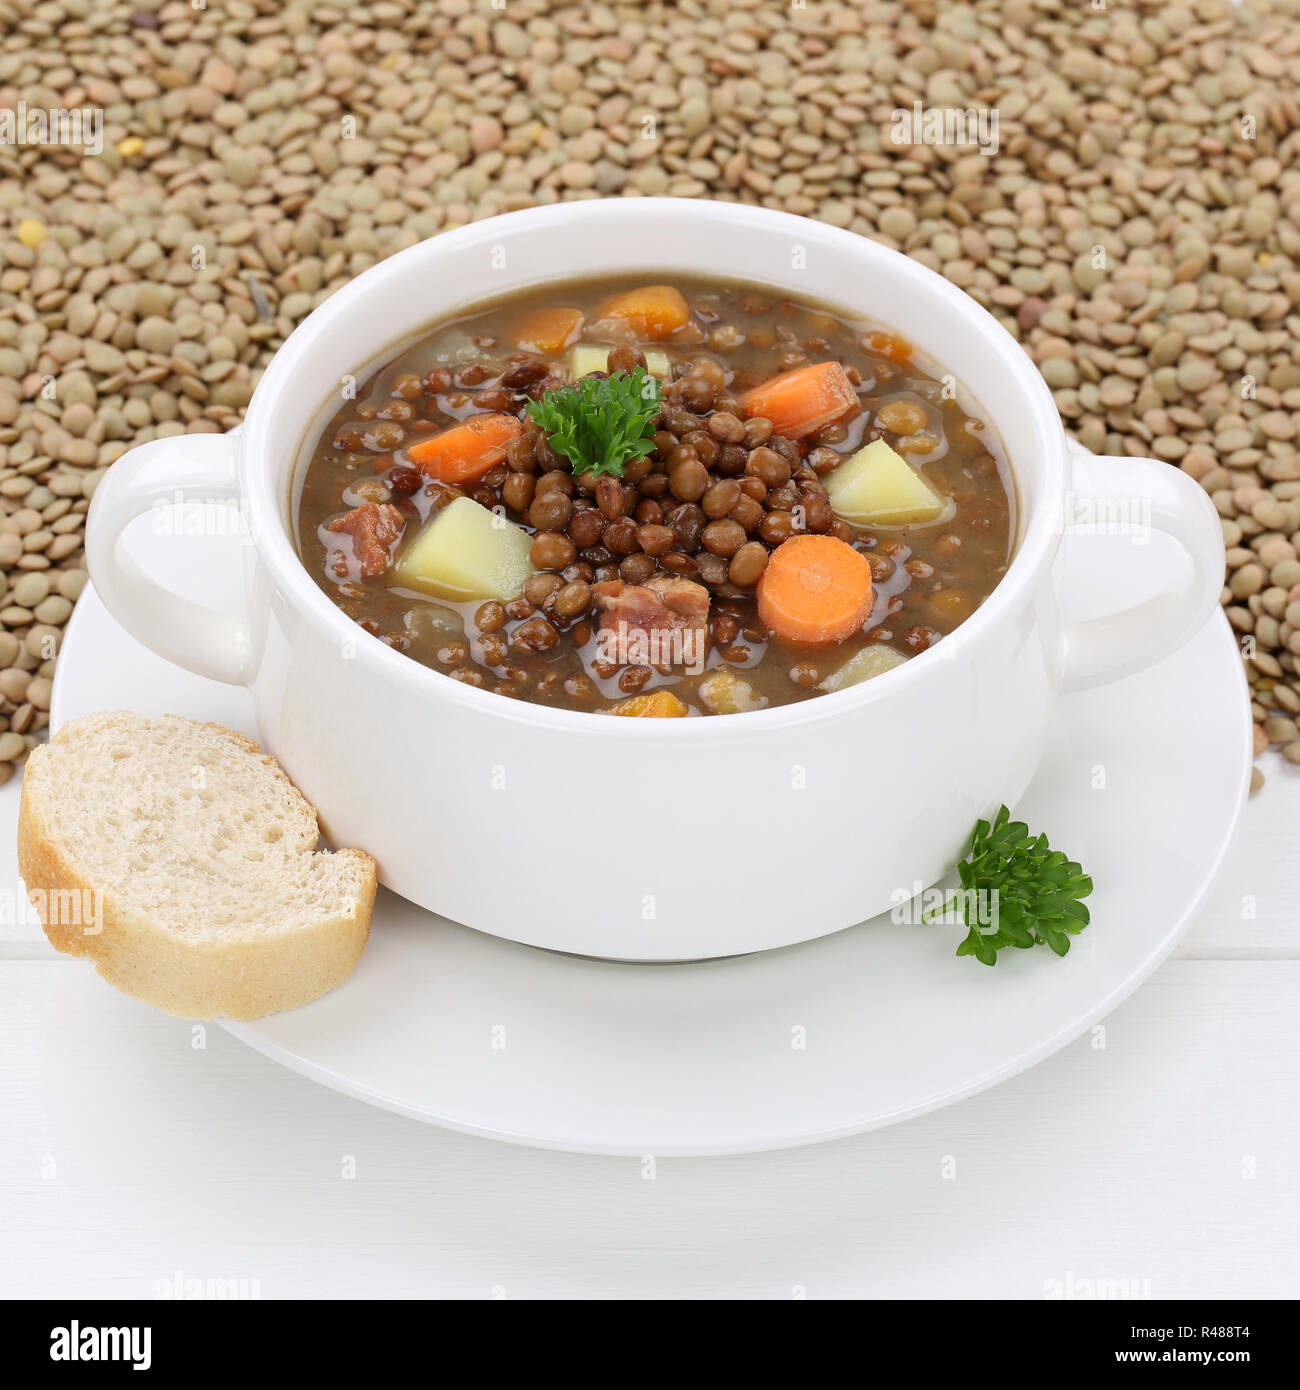 healthy eating lentil soup with fresh lentils soup in soup bowl Stock Photo